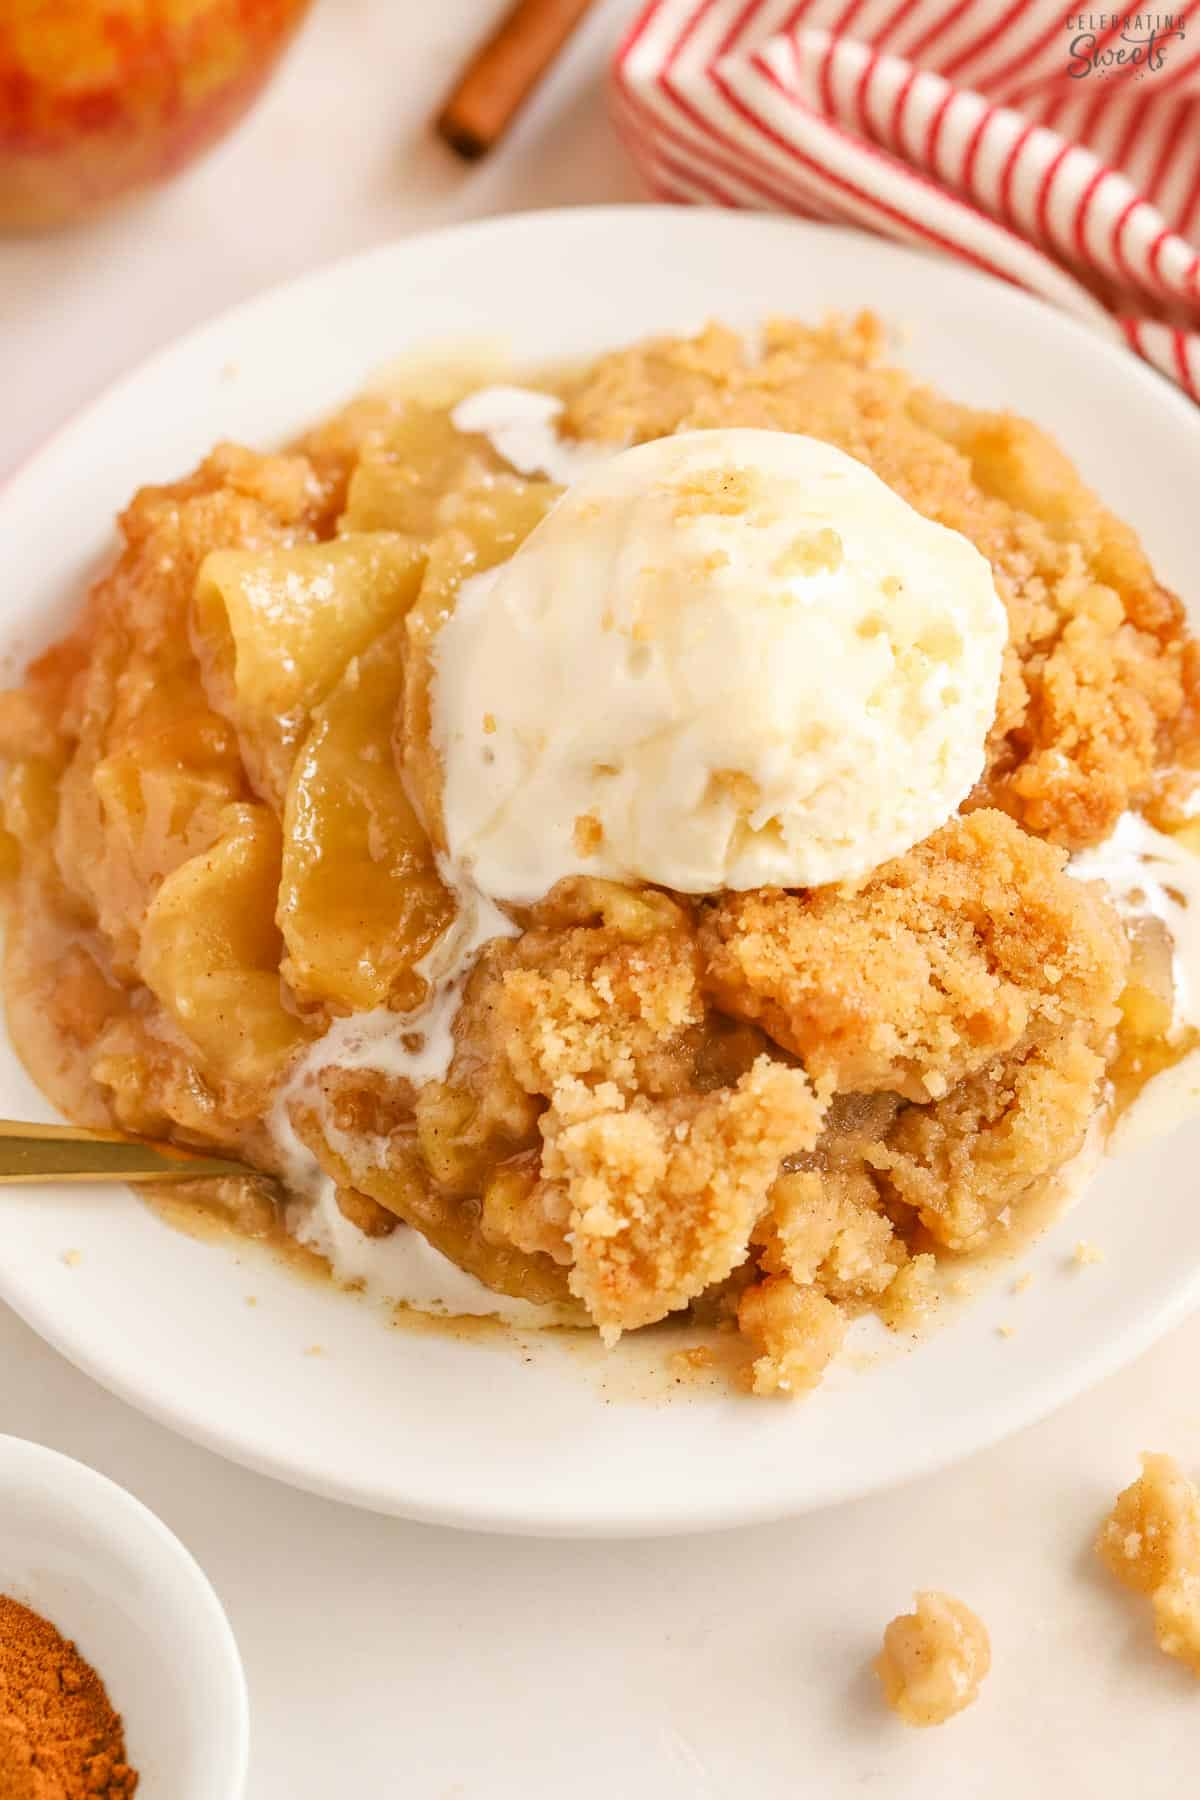 Apple crumble on a white plate topped with a scoop of melty vanilla ice cream.